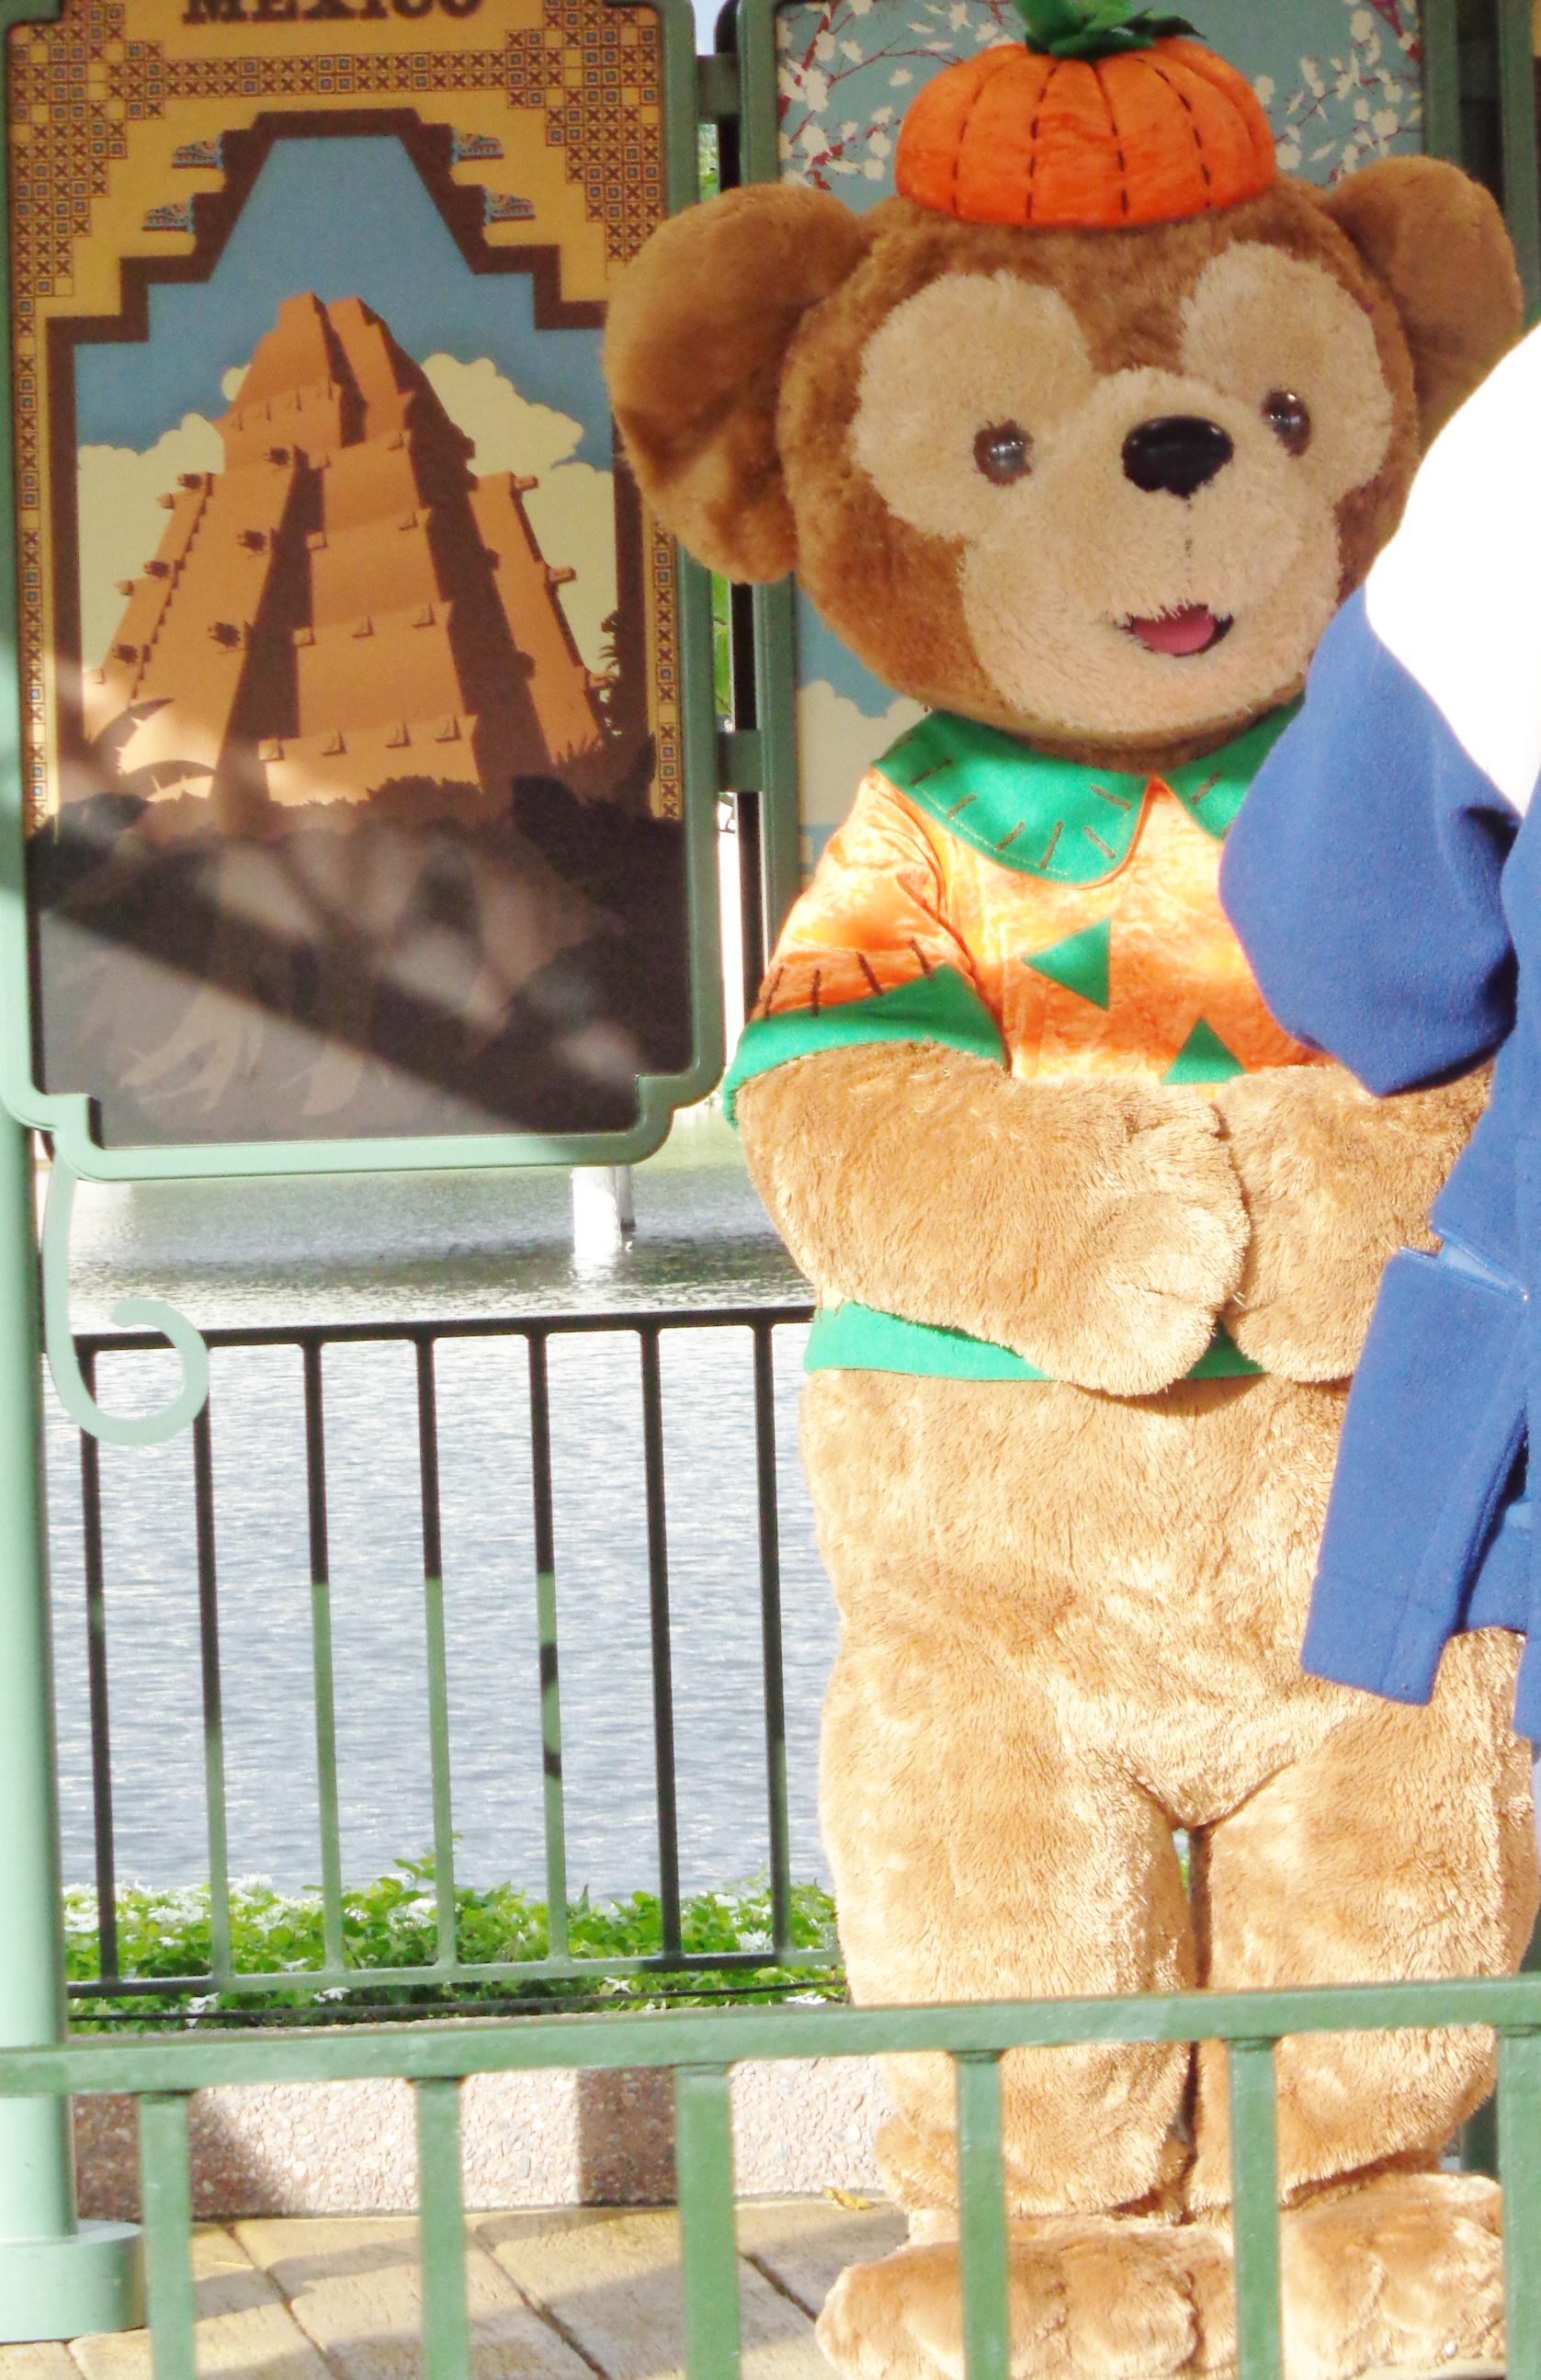 Seeing Duffy during the Food u0026 Wine Festival in October. Seeing Duffy in his Halloween costume ... & Meeting Duffy the Disney Bear at Epcot | Elly and Carolineu0027s Magical ...